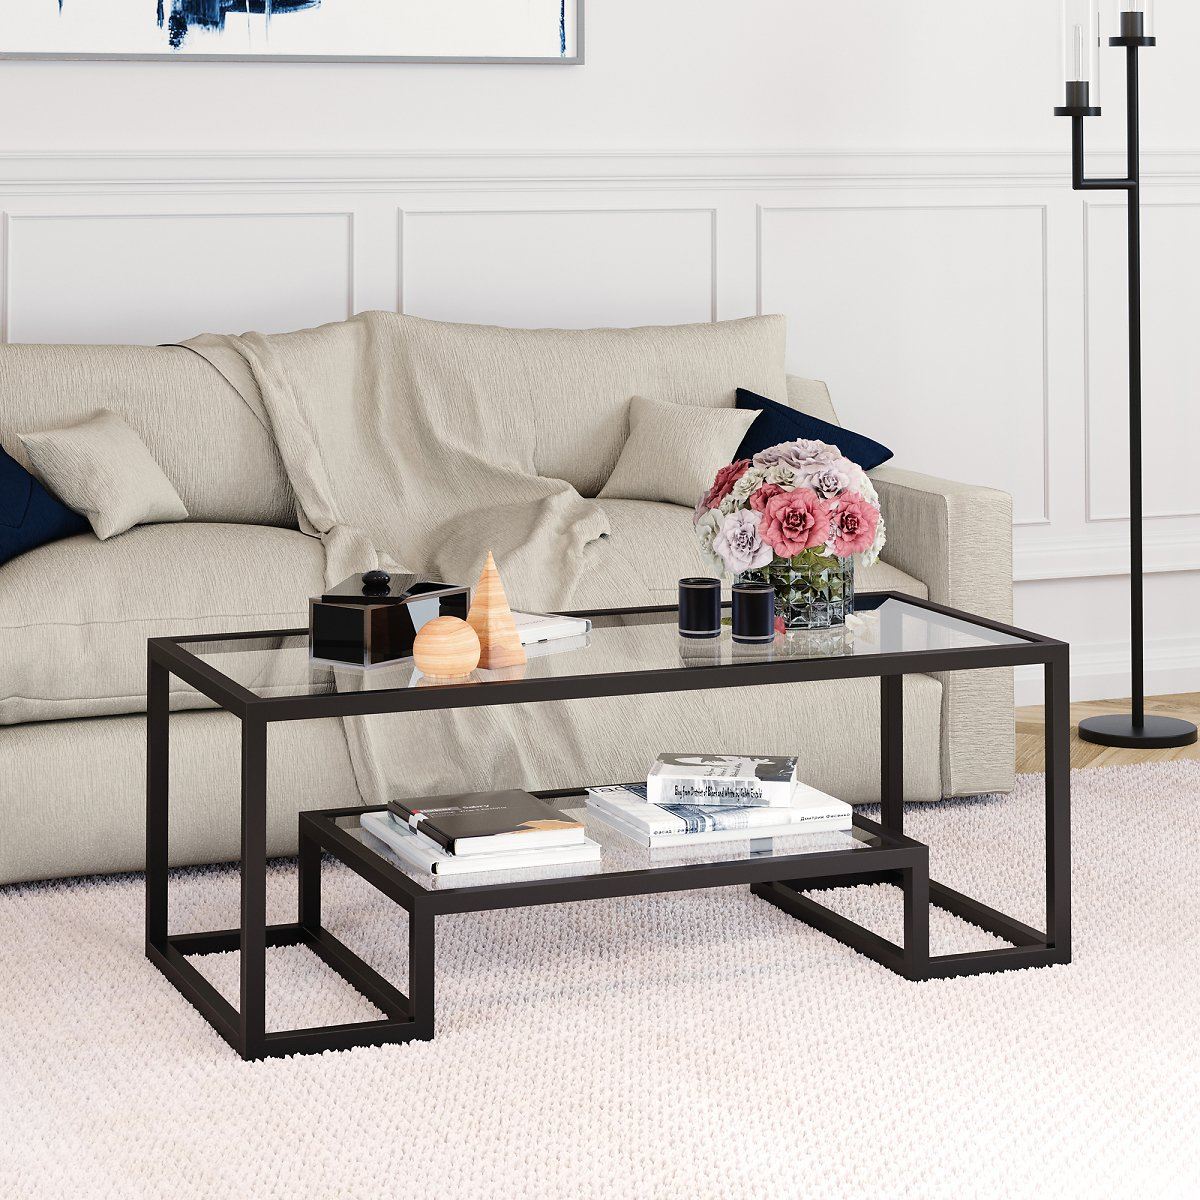 Geometric Modern Glass Coffee Table with Storage Shelf, Rectangle Accent Table in Nickel for Living Room, Home Office, Den, 17